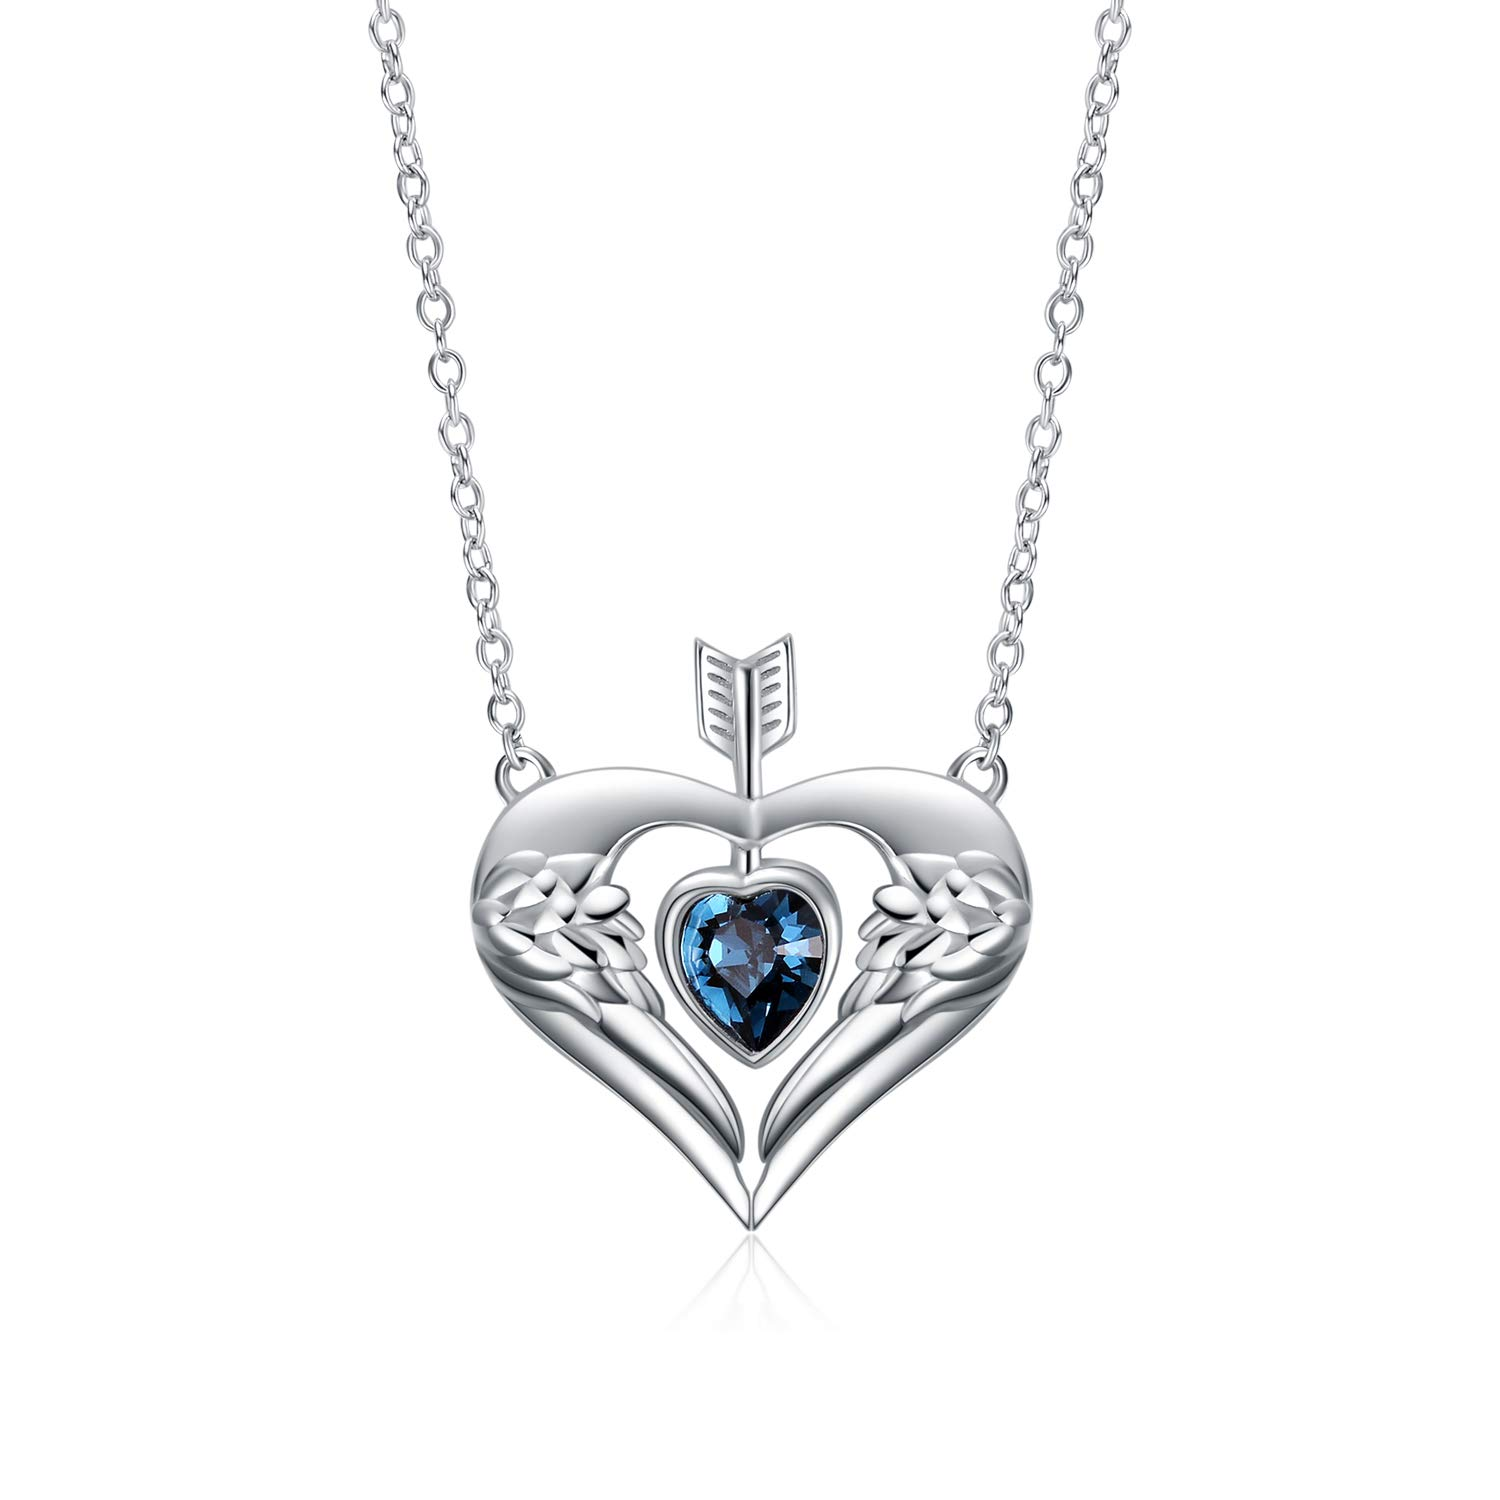 YFN Sterling Silver Guardian Angel Wings Simulated Turquoise Pendant Necklace Jewelry for Women Girls Gifts (Love Angel Wing Necklace) by YFN